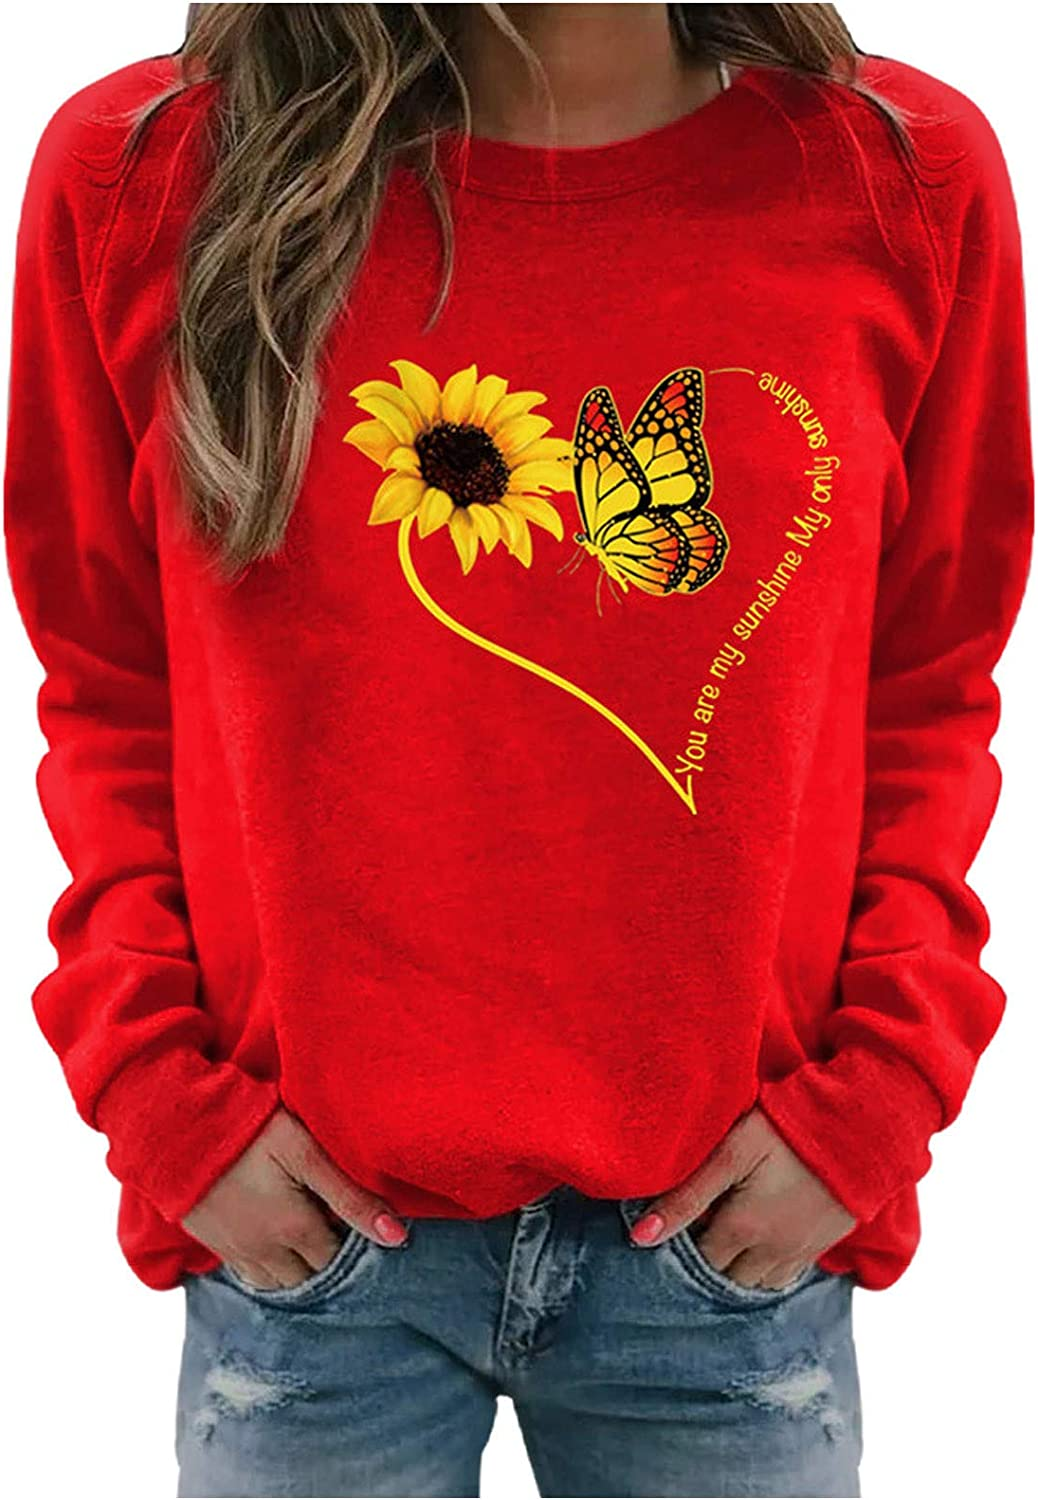 Long Sleeve Crewneck Pullover Tops Funny Sunflower Graphic Casual Shirts Sweater Tunics Sweatshirts for Women